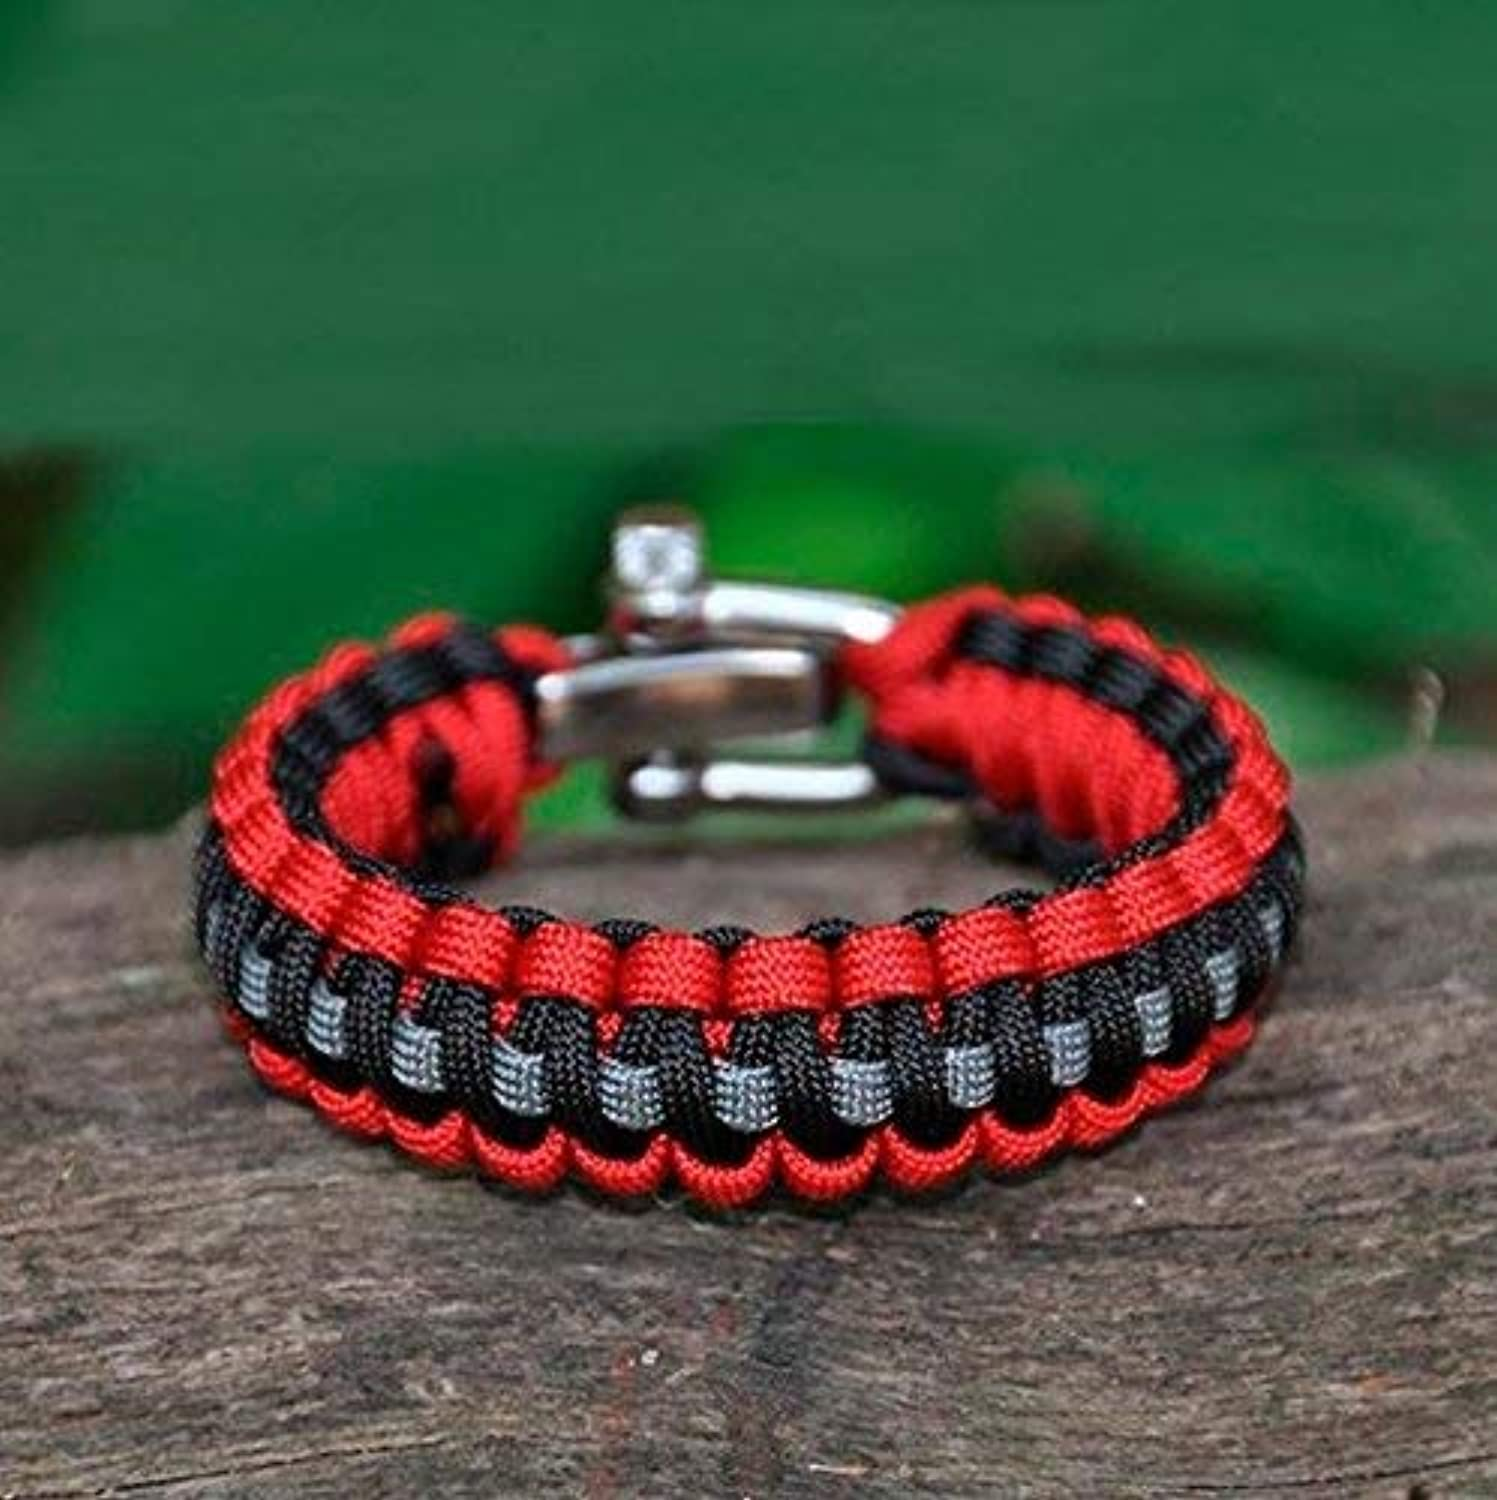 Camping Tools Mountain Bracelet Comfortable Cord Outdoor Camping Reliable Safety WearResistant Durable Useful Multipurpose Bracelet